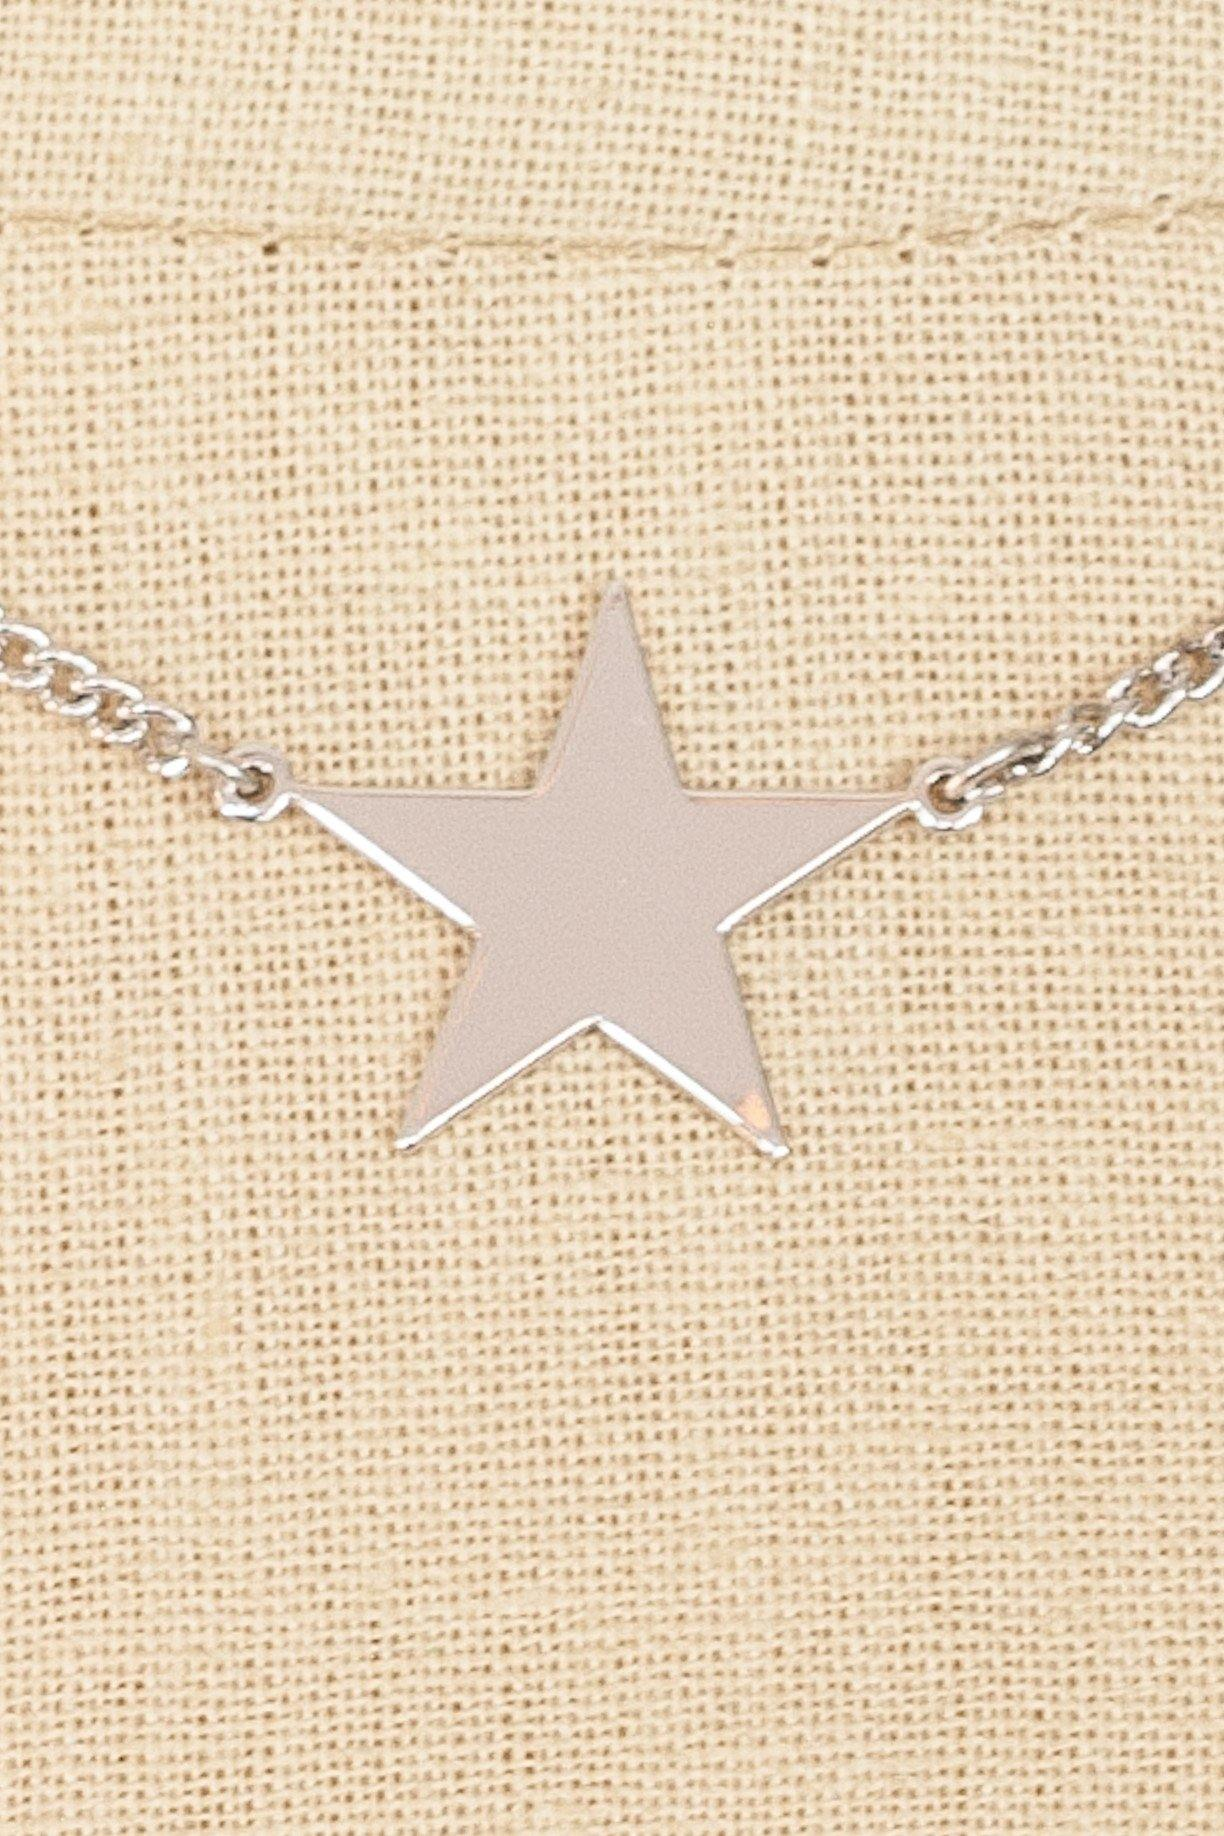 80's__Avon__Silver Star Necklace